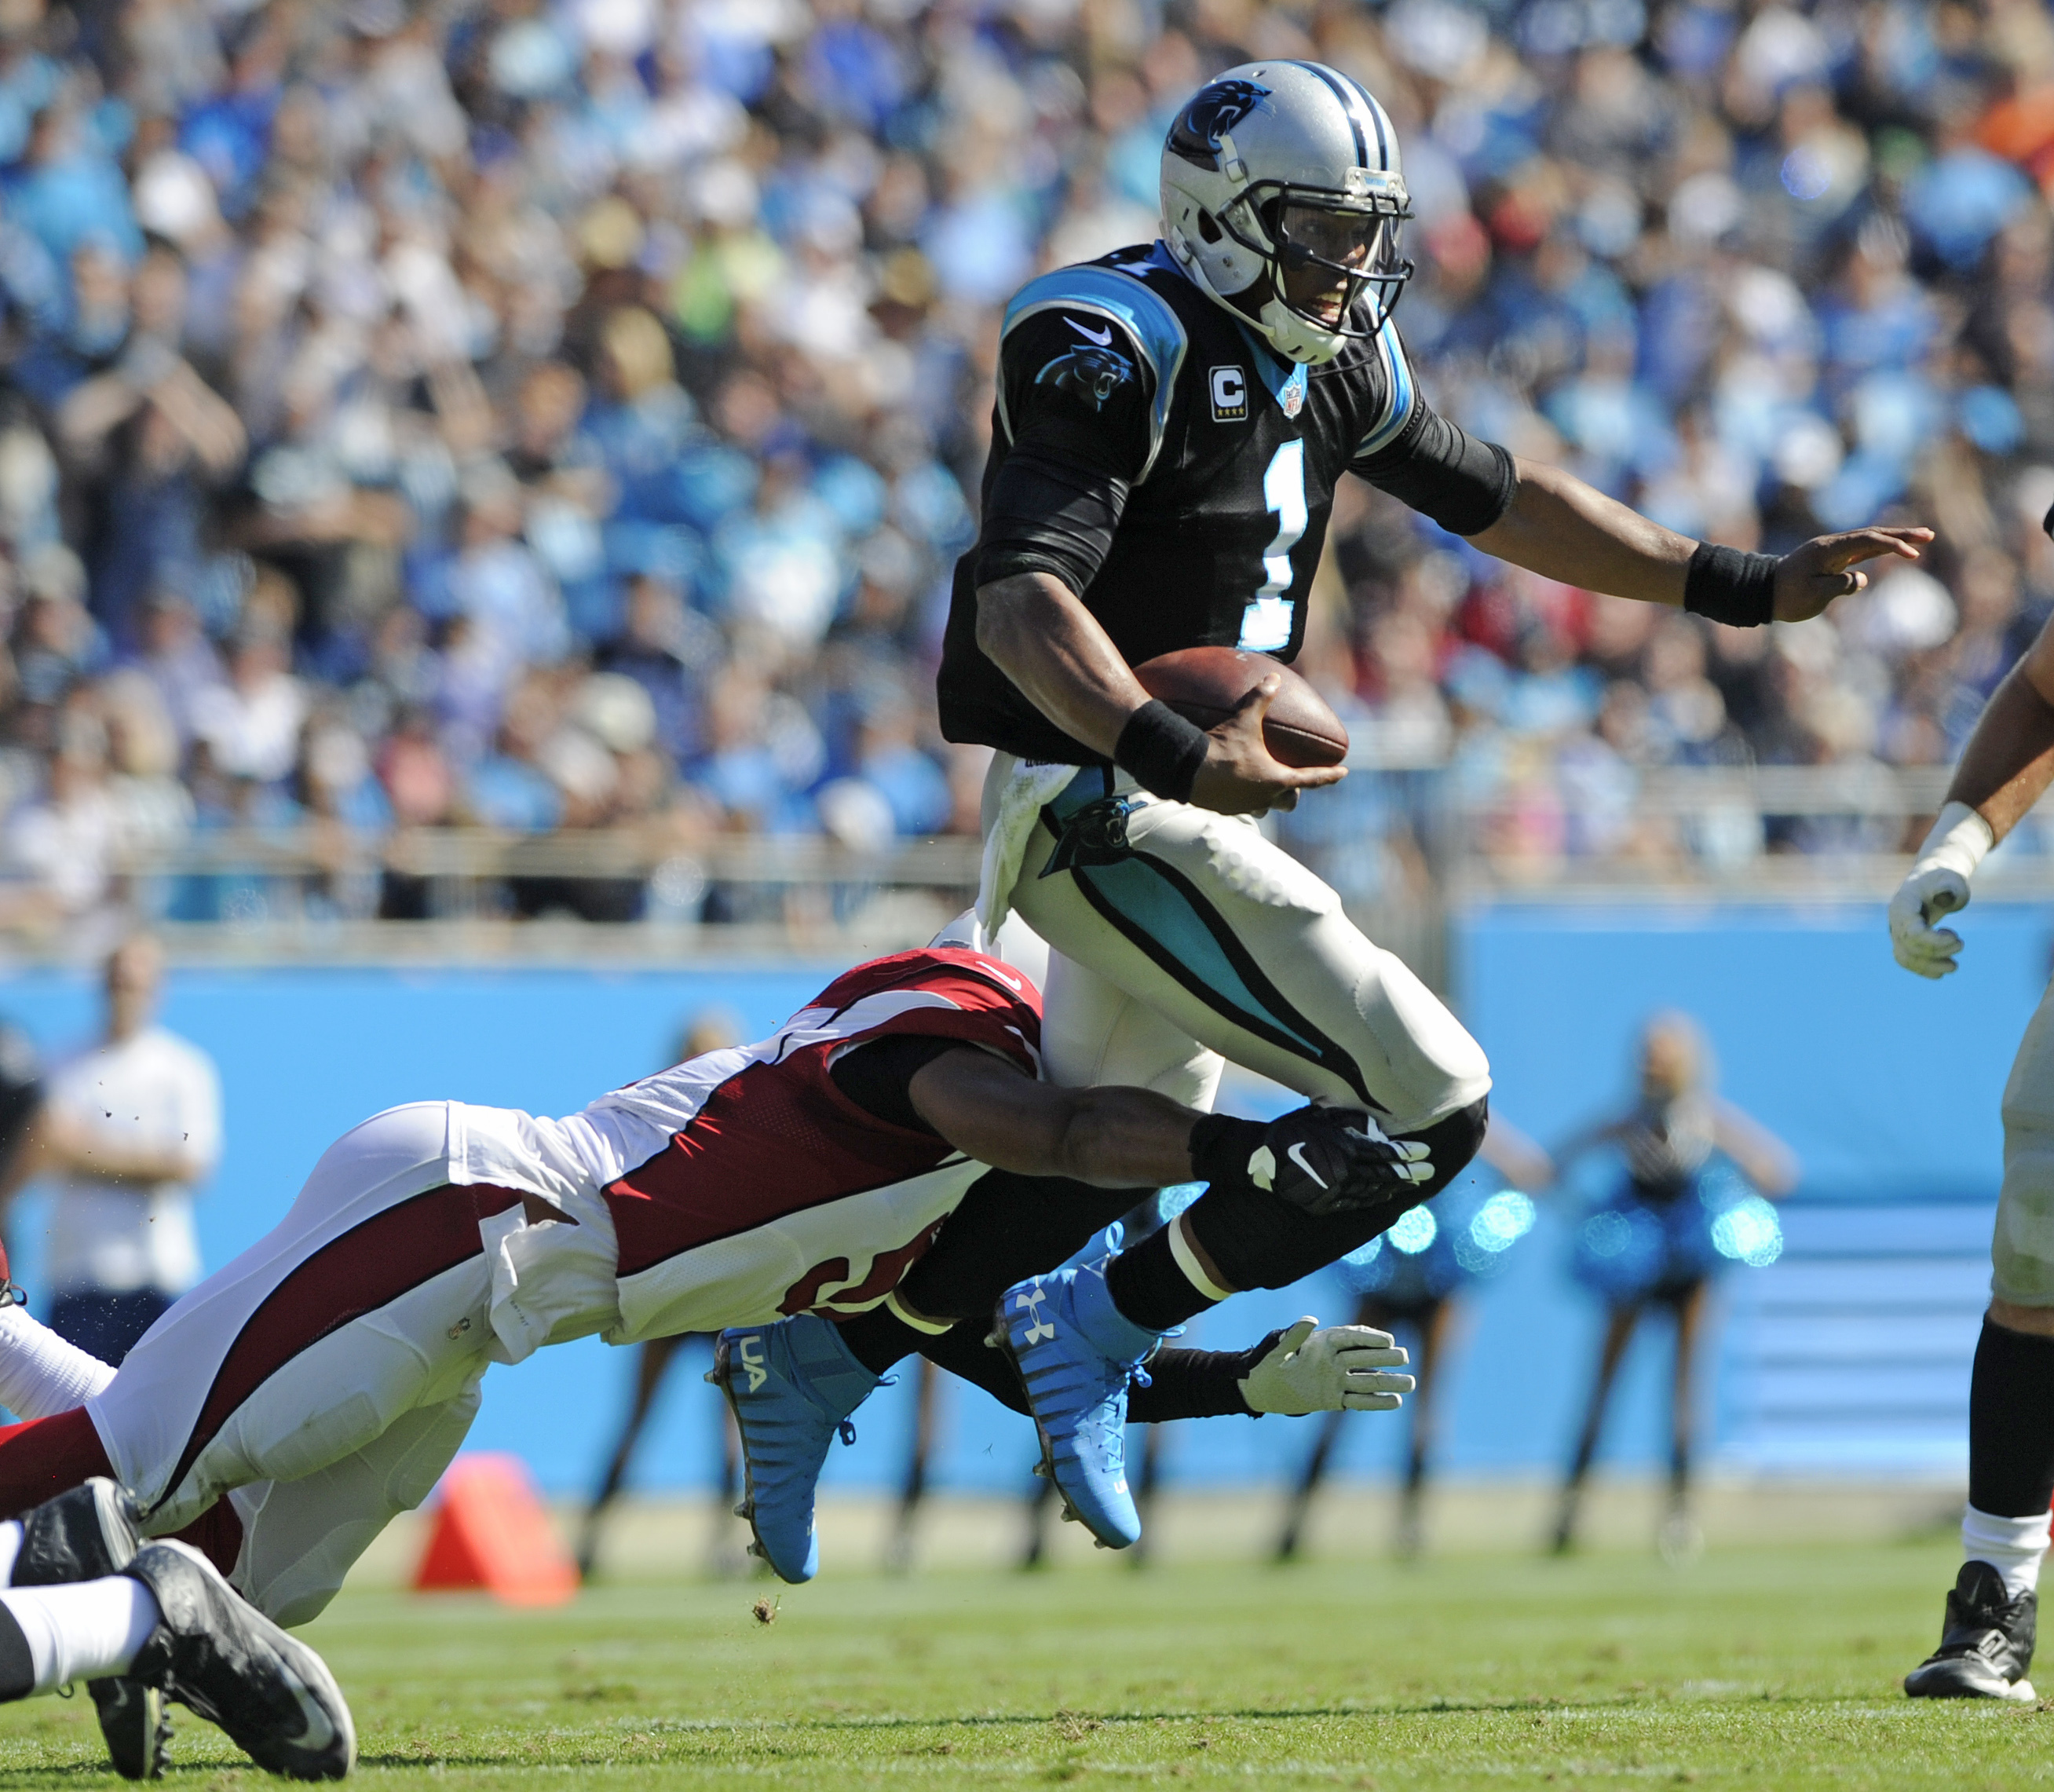 cardinals football game live national football league betting lines